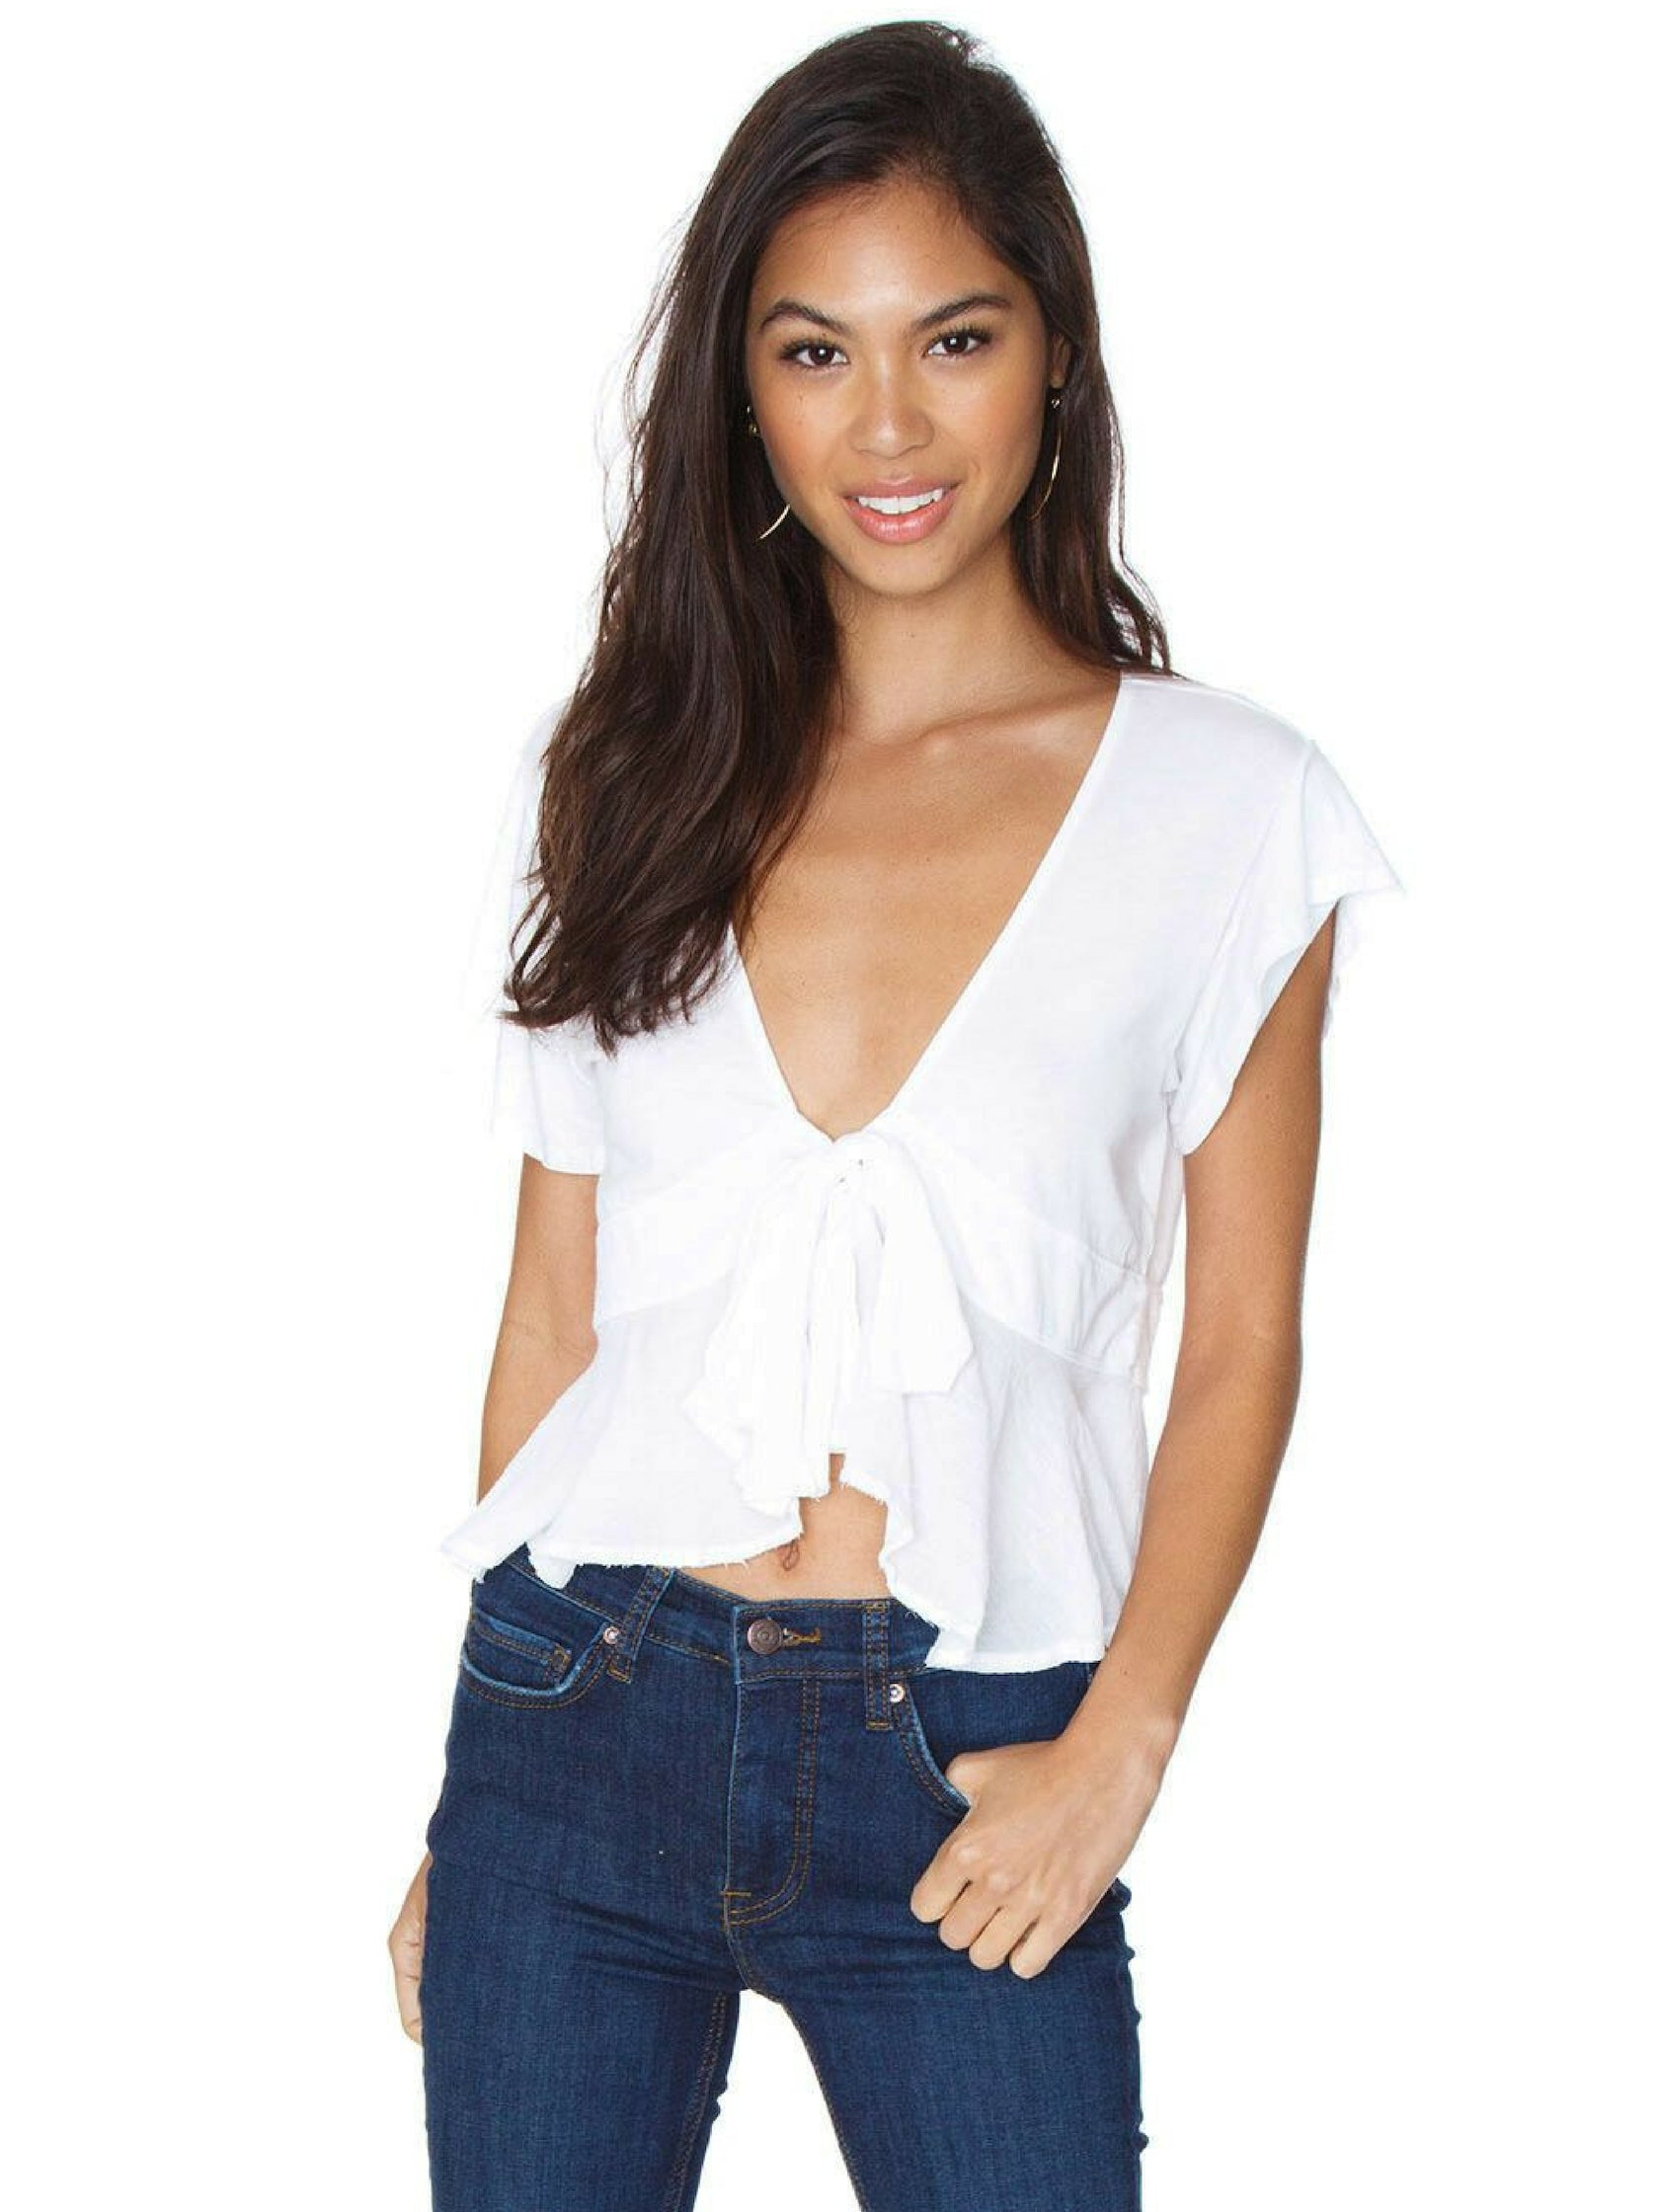 28604f68c85c Girl outfit in a top rental from Free People called Knot Me Tee